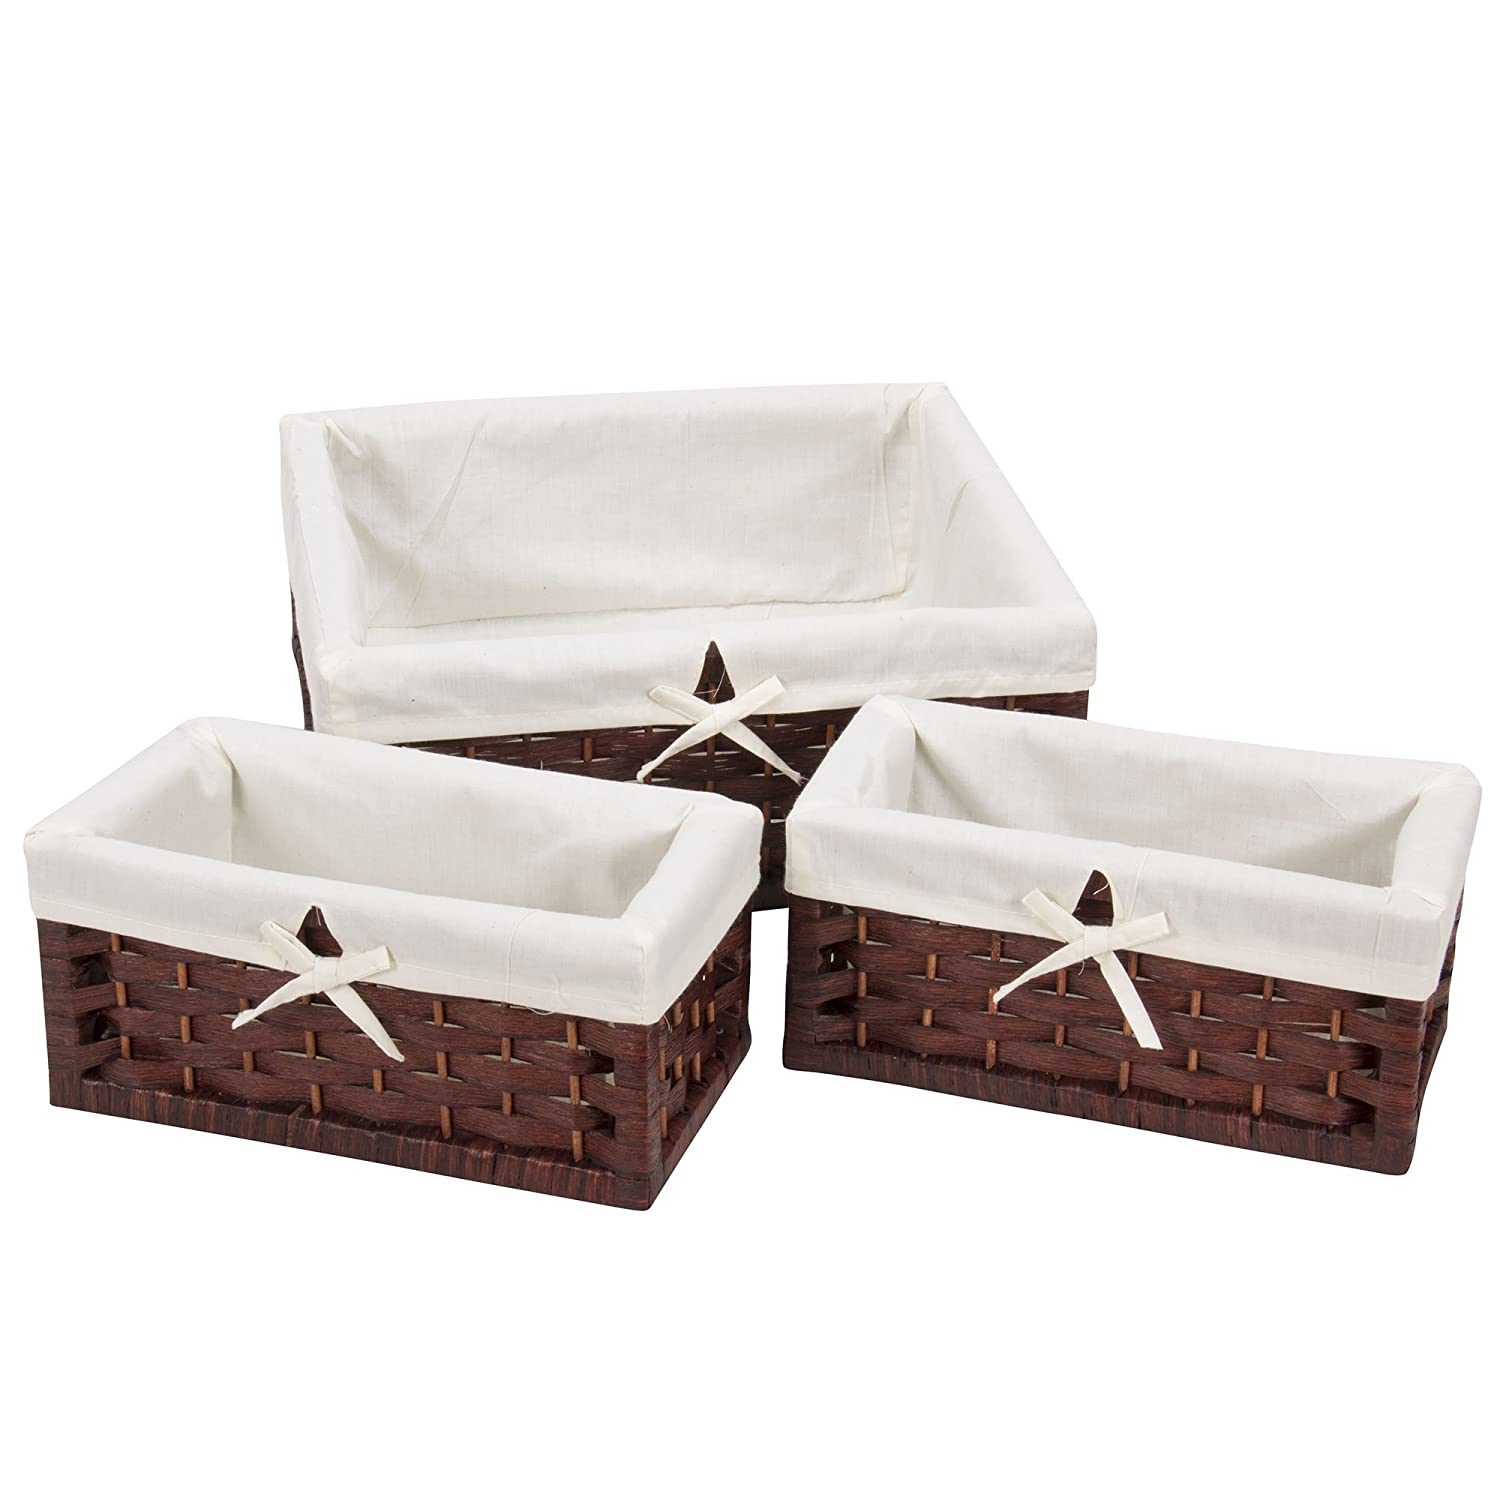 Amazon.com: Household Essentials ML-7021 Set of Three Wicker Storage ...